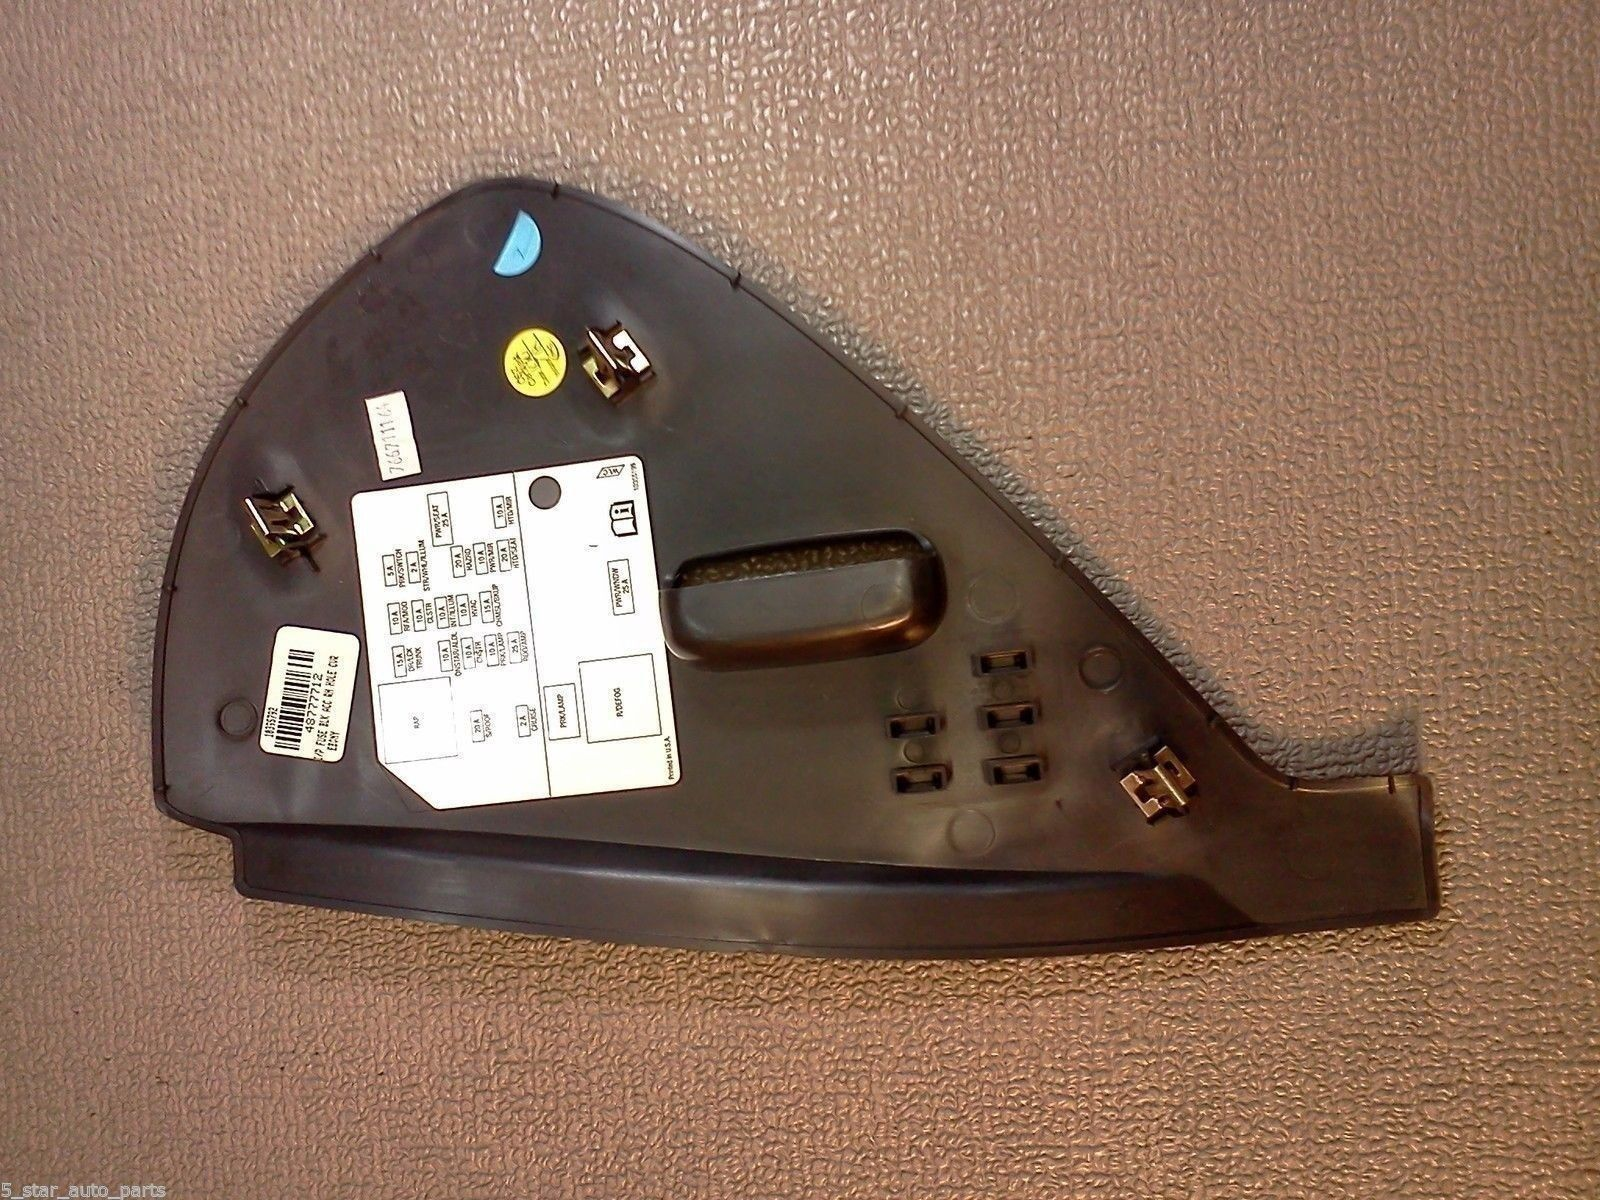 hight resolution of buick lucerne fuse box dash cover 2006 2007 2008 2009 2010 2011 color black